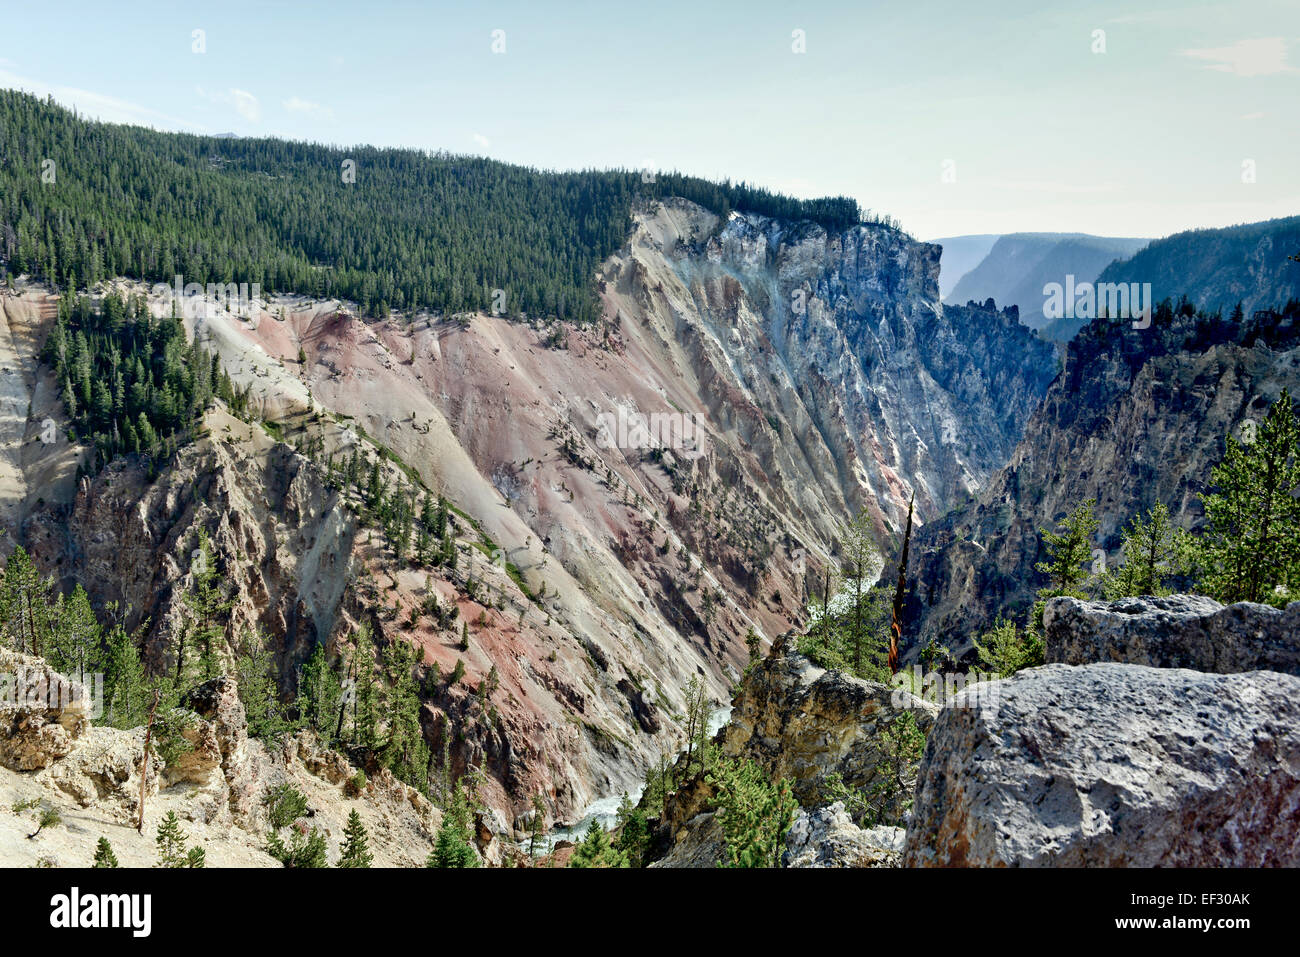 American National Park - Stock Image